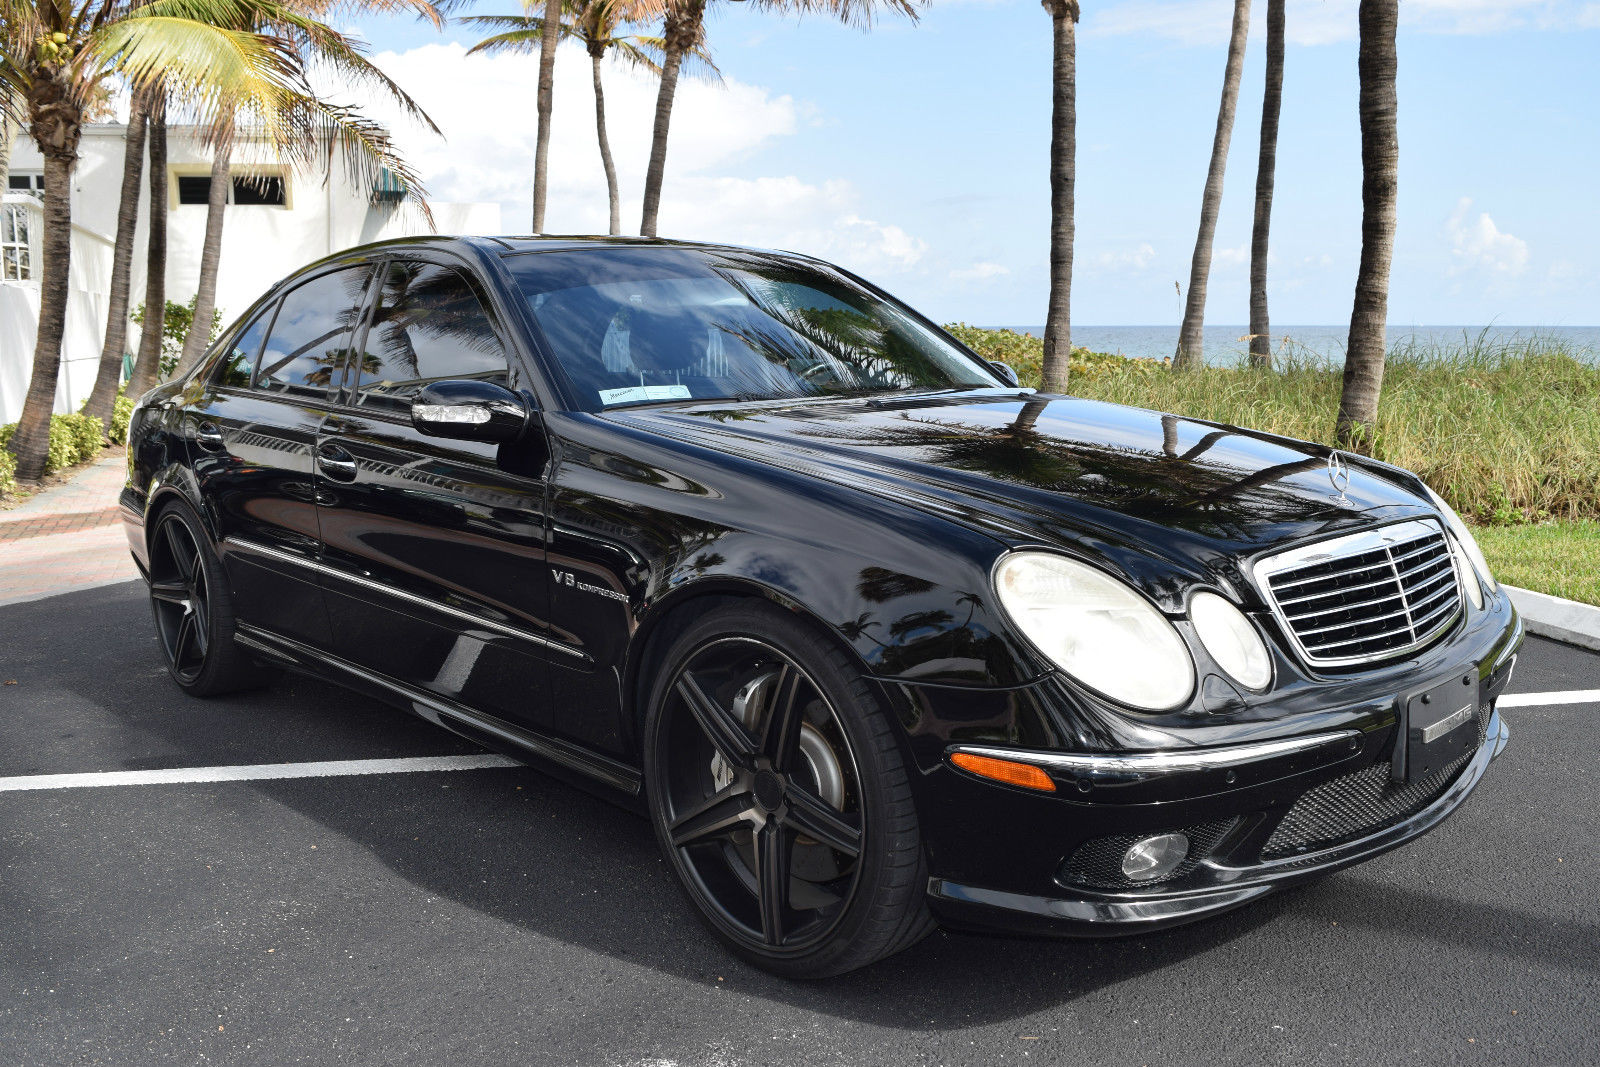 benztuning 2006 mercedes benz w211 e55 amg on 20 niche. Black Bedroom Furniture Sets. Home Design Ideas